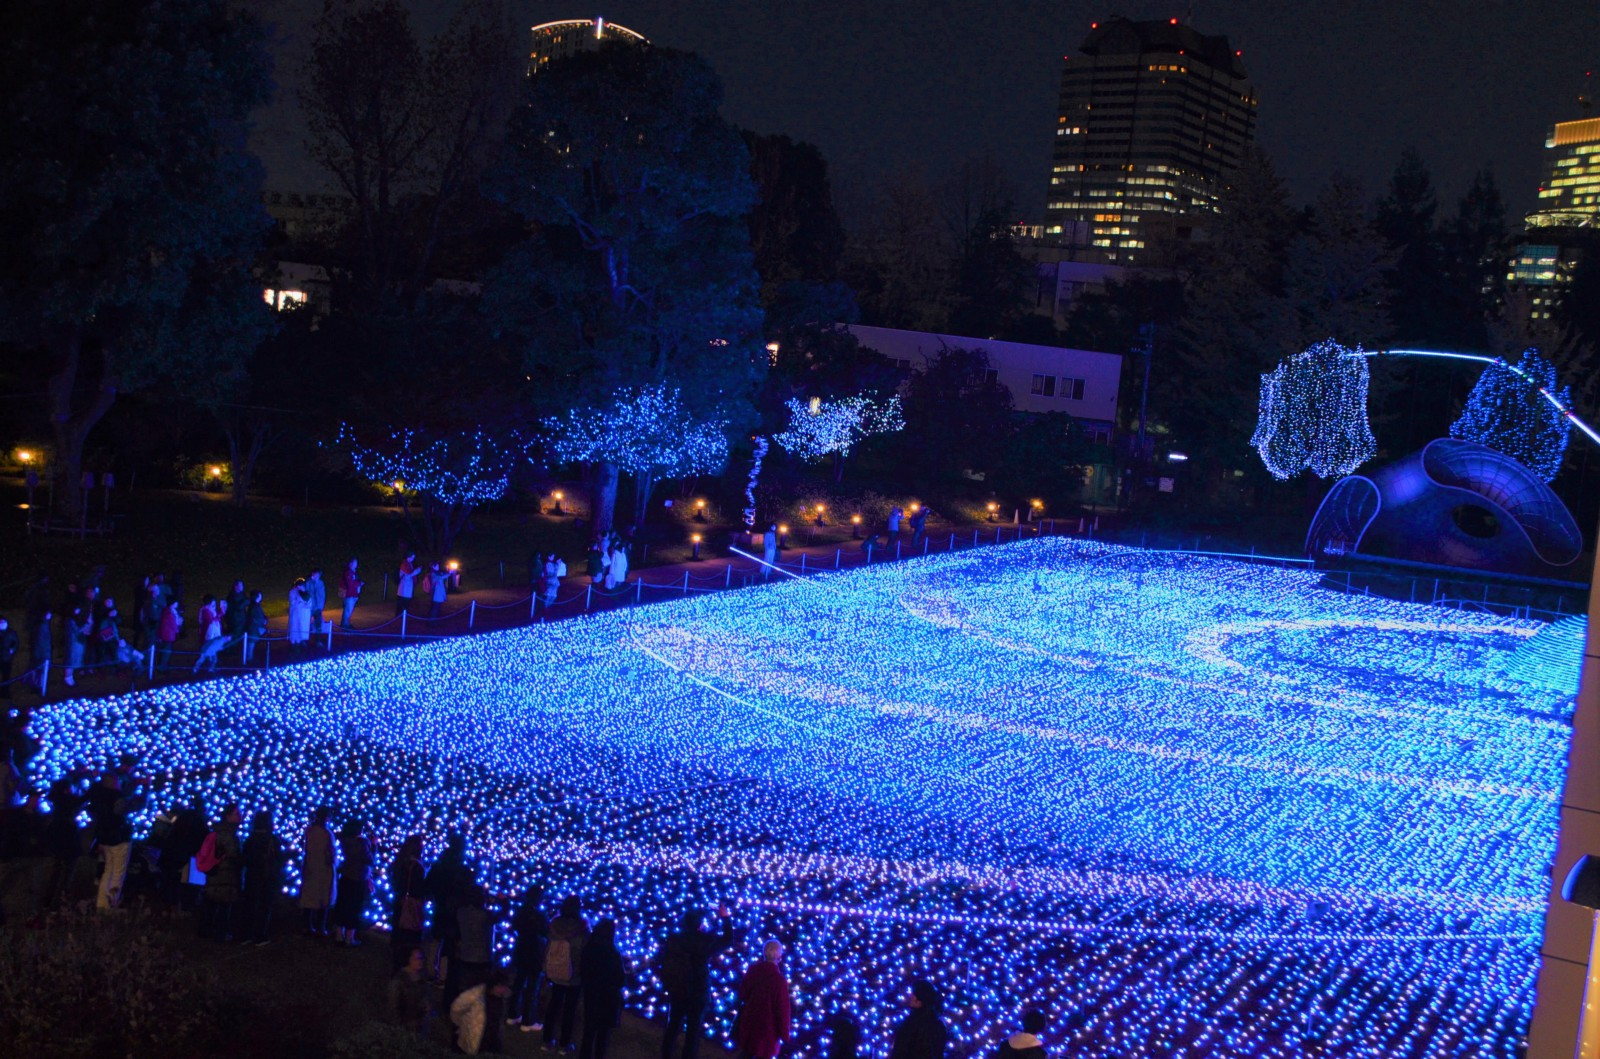 Romantic and spectacular winter illuminations in Tokyo